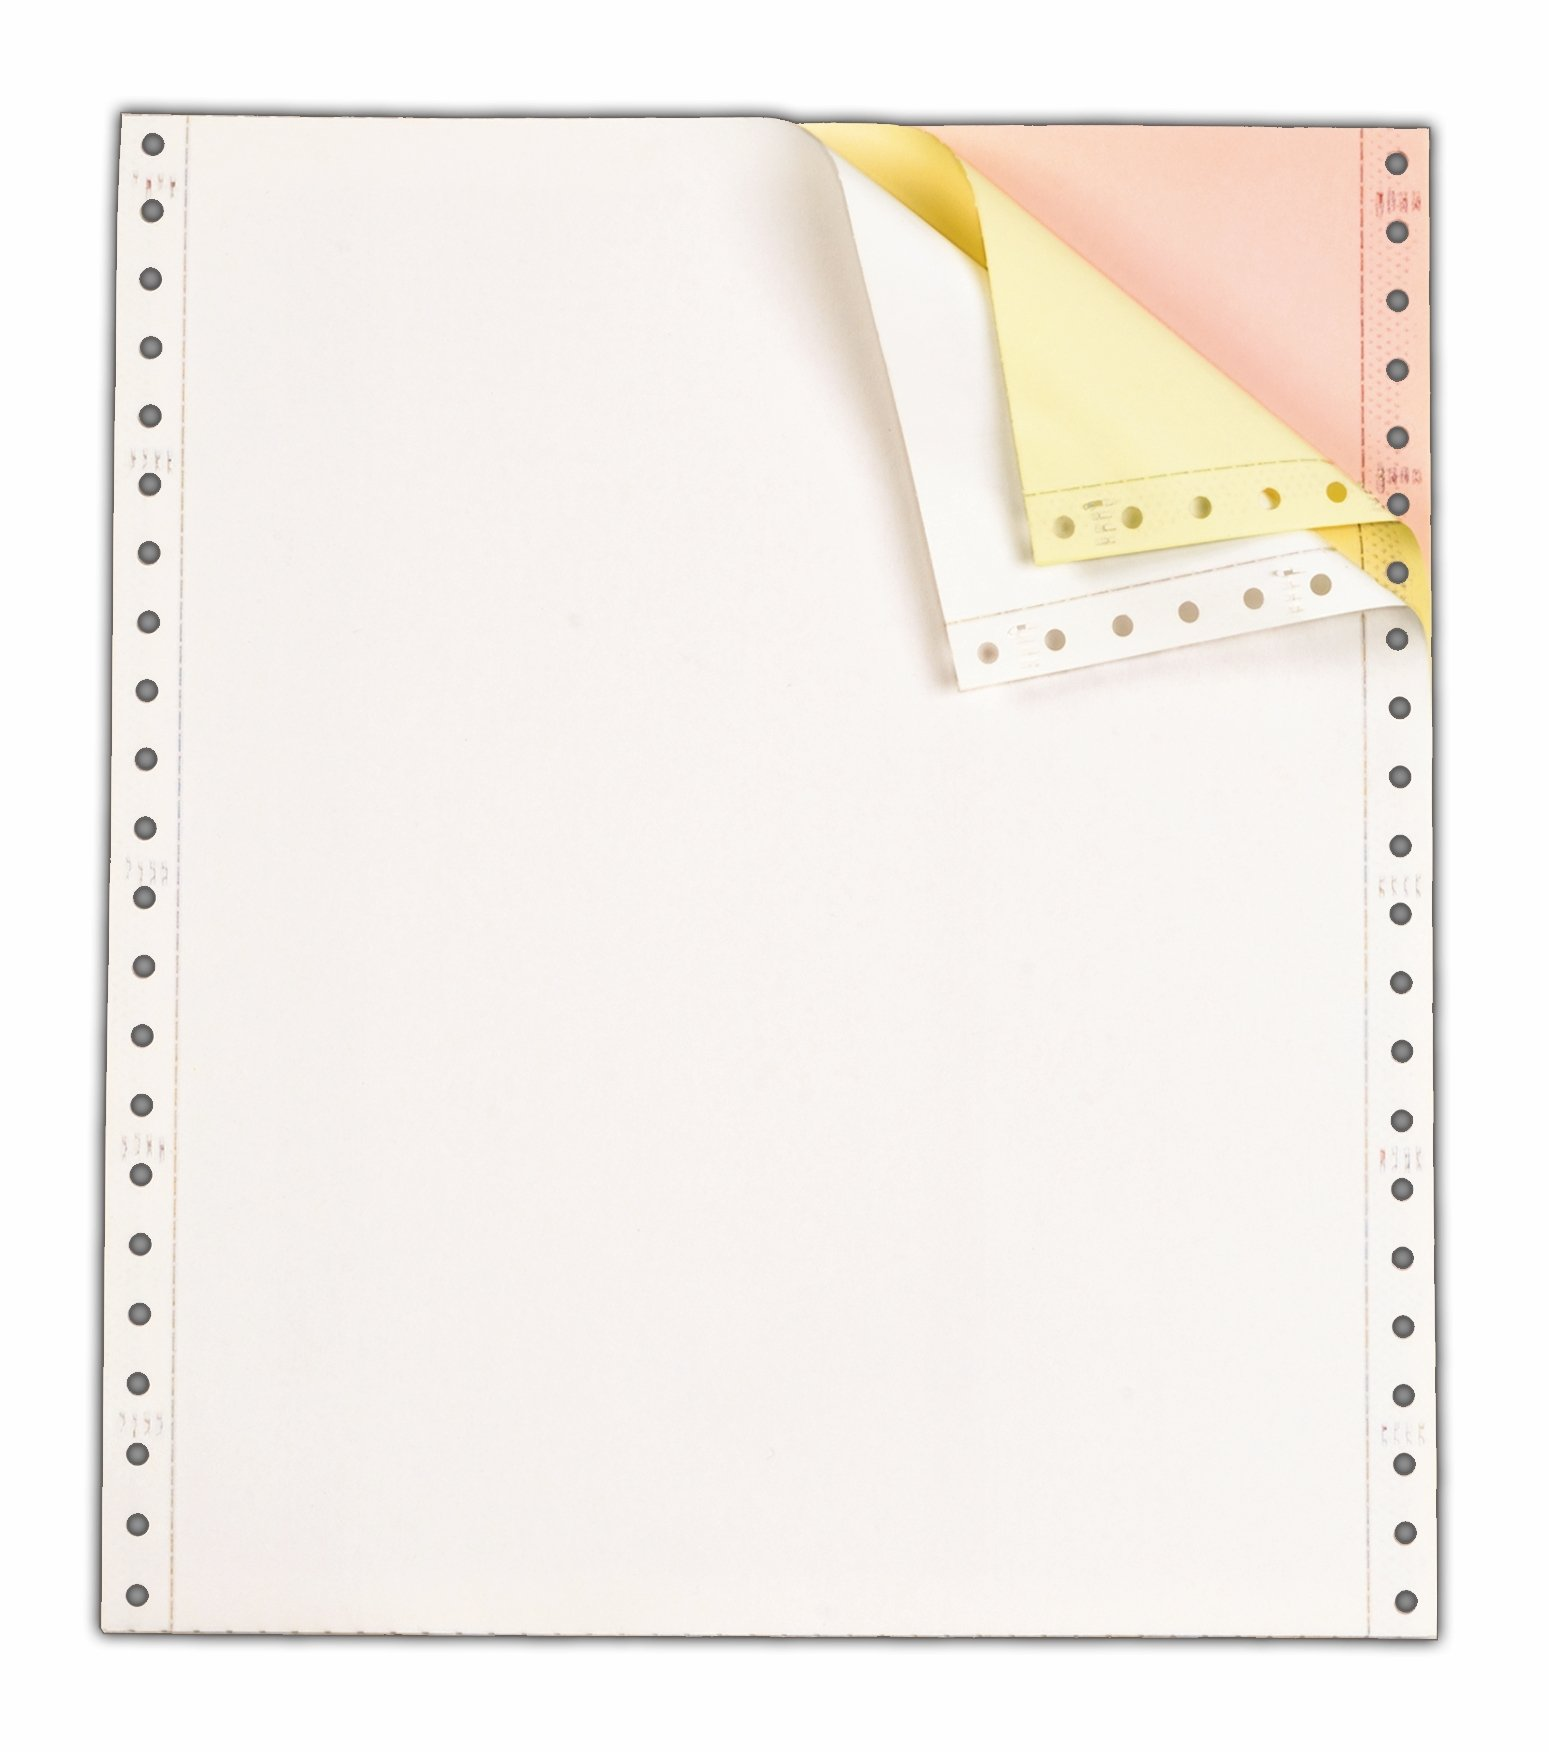 TOPS Continuous Computer Paper, 3-Part Carbonless, Removable 0.5 Inch Margins, 9.5 x 11 Inches, 1100 Sheets, White/Canary/Pink (55179) by TOPS